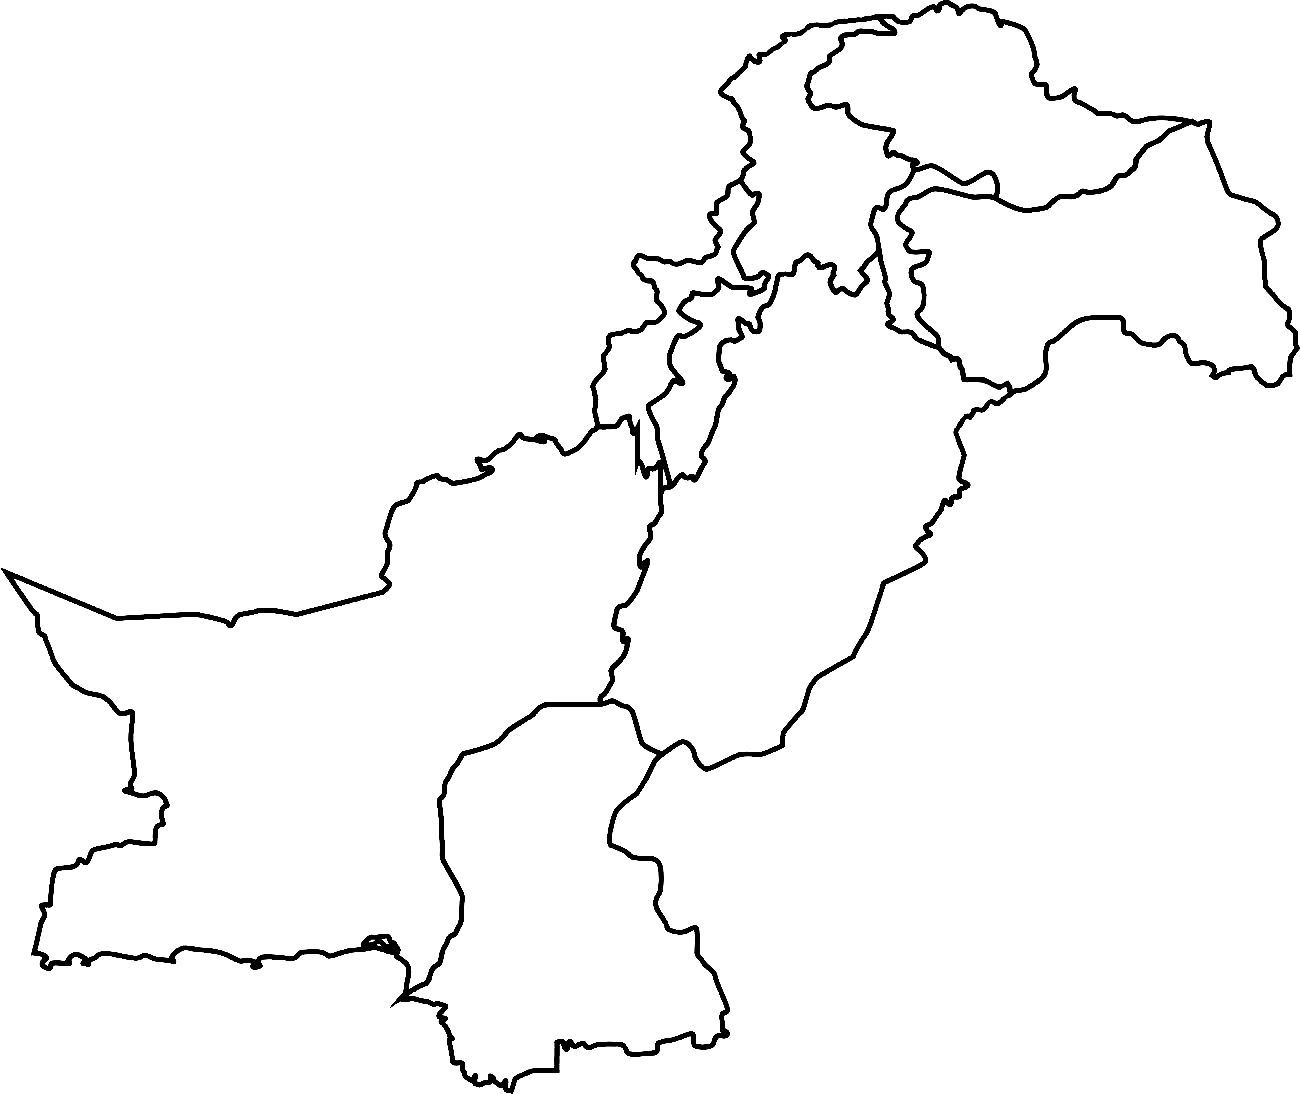 Pakistan Full Complete Map With All States And Provinces